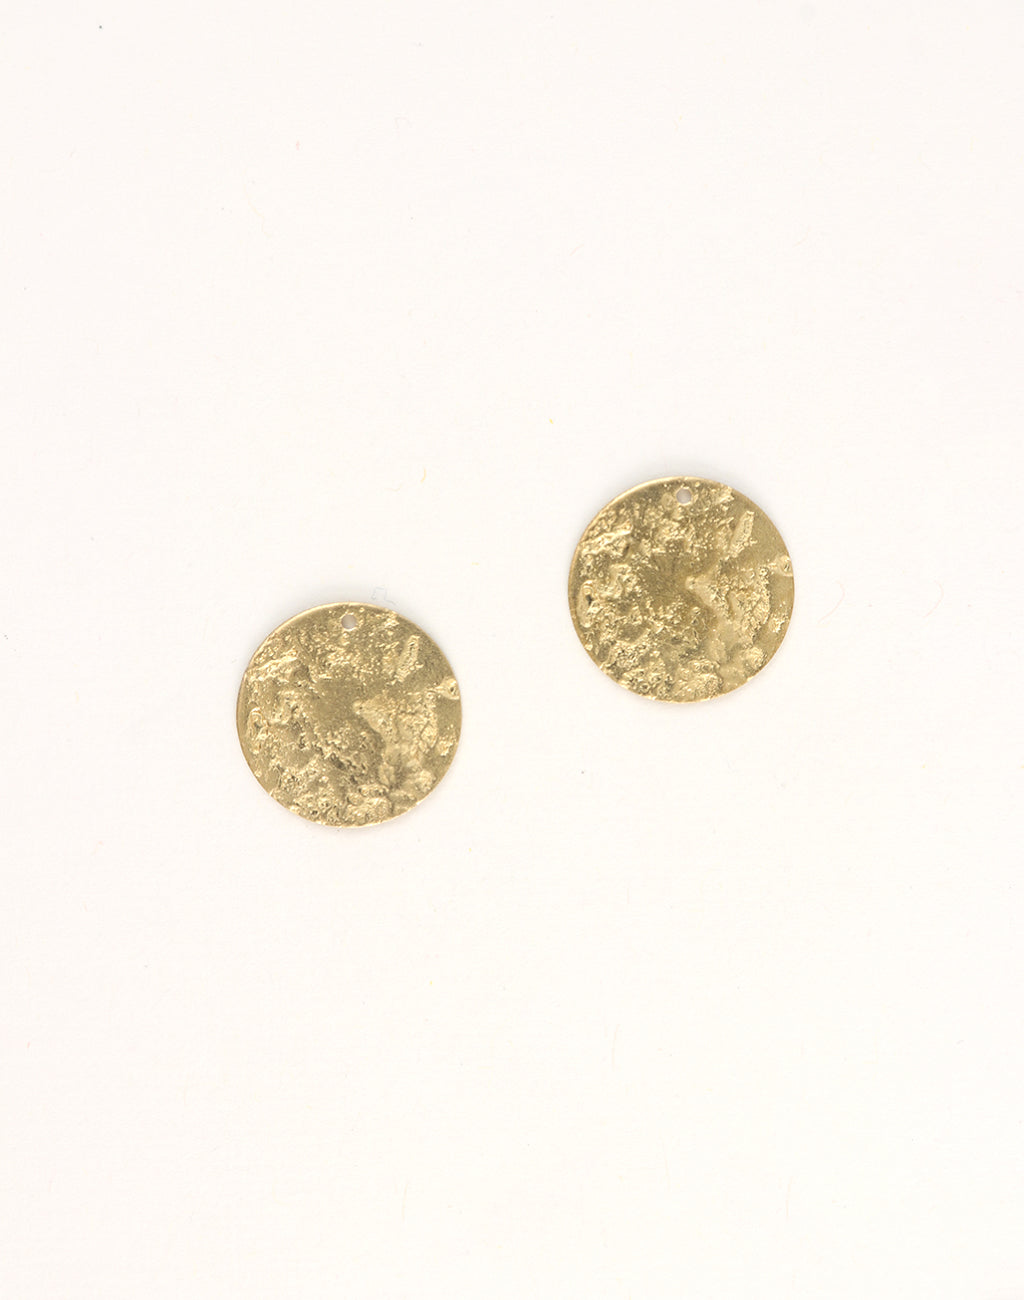 Nugget Circle, 26x19mm, (2pcs)